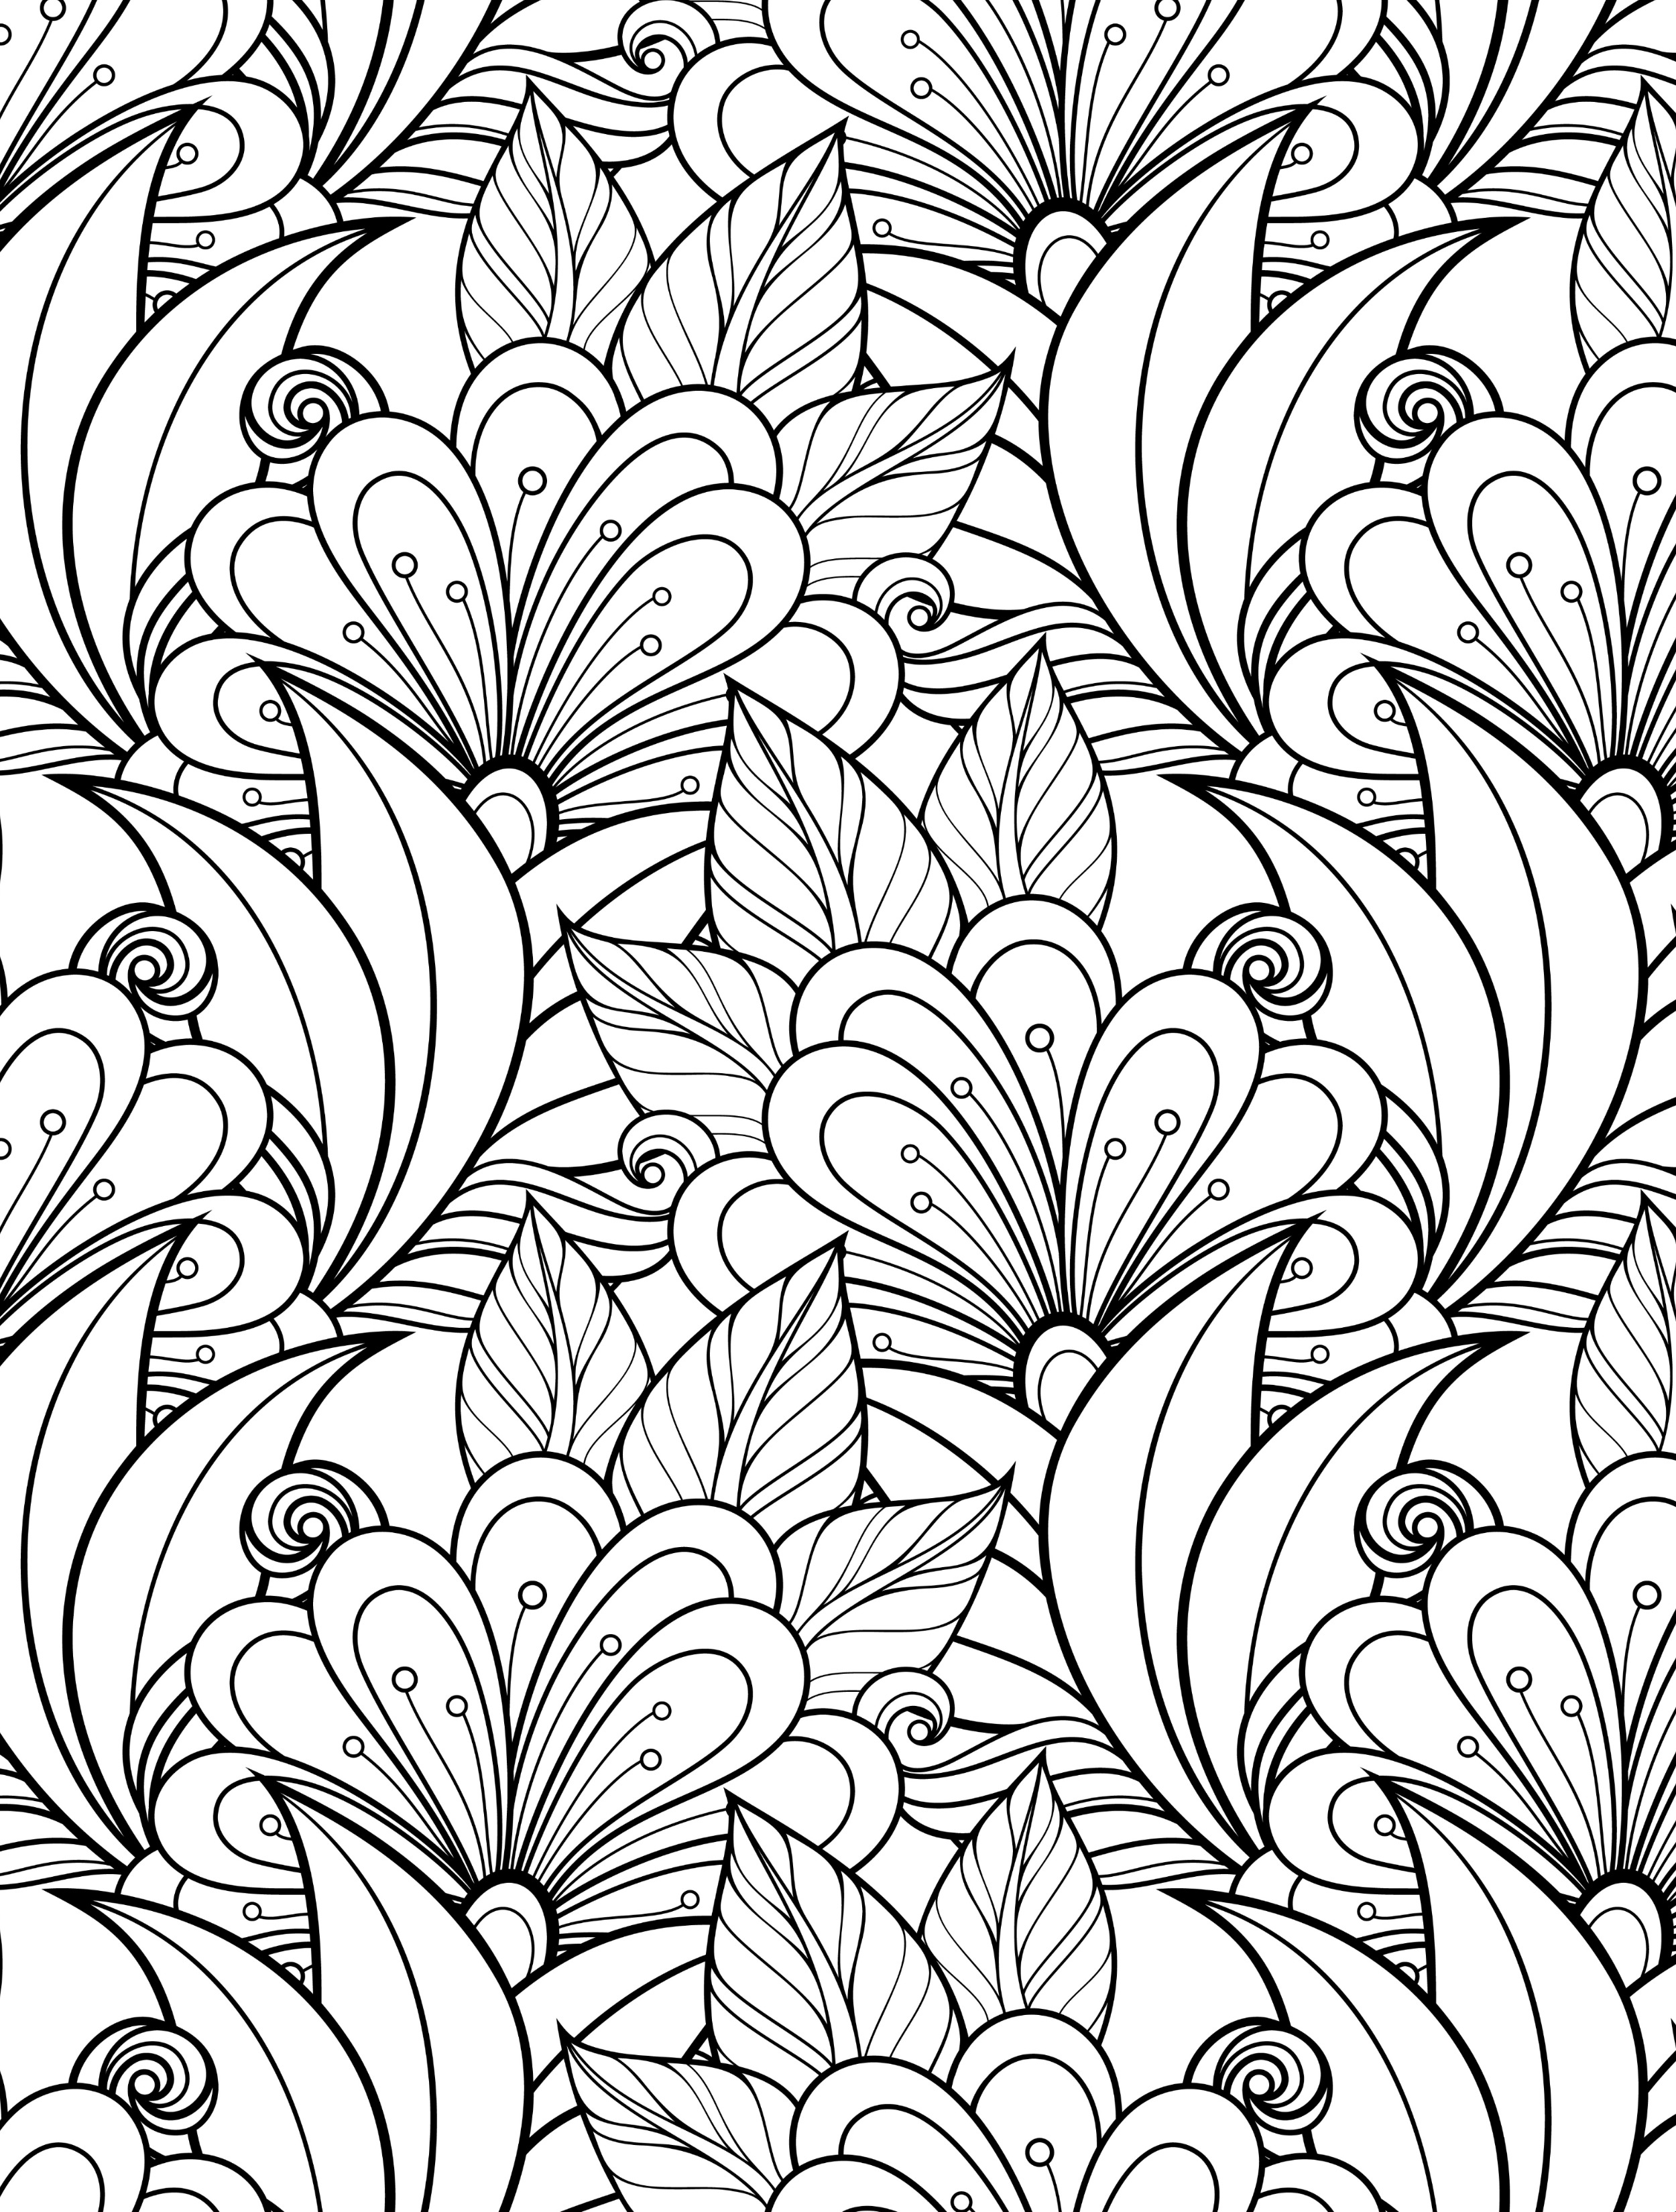 coloring designs free free printable abstract coloring pages for adults designs free coloring